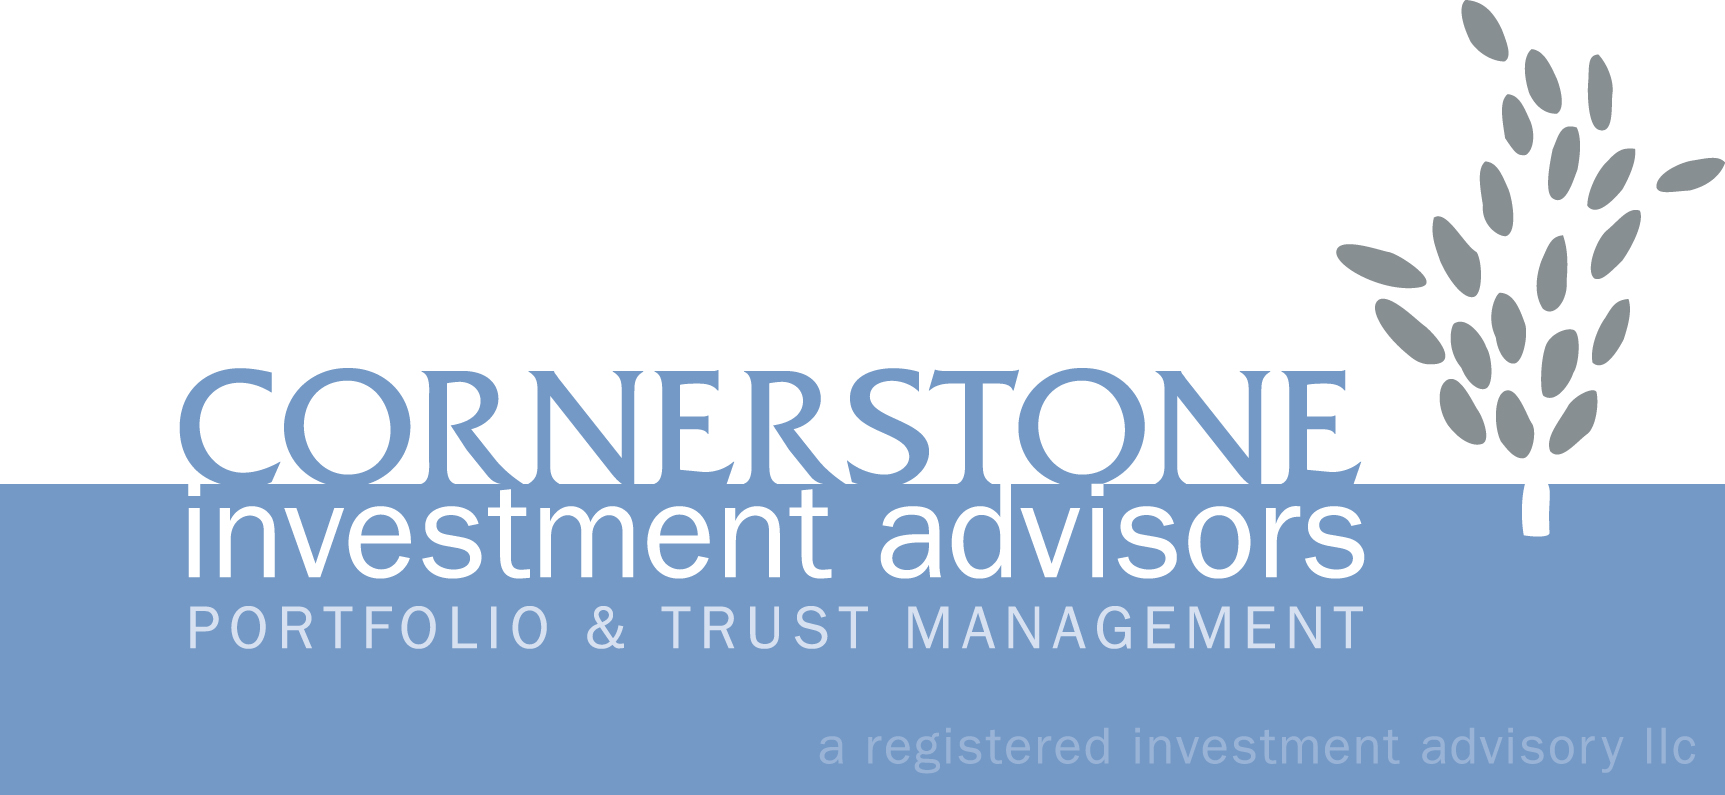 LogoTree Cornerstone investment.jpg